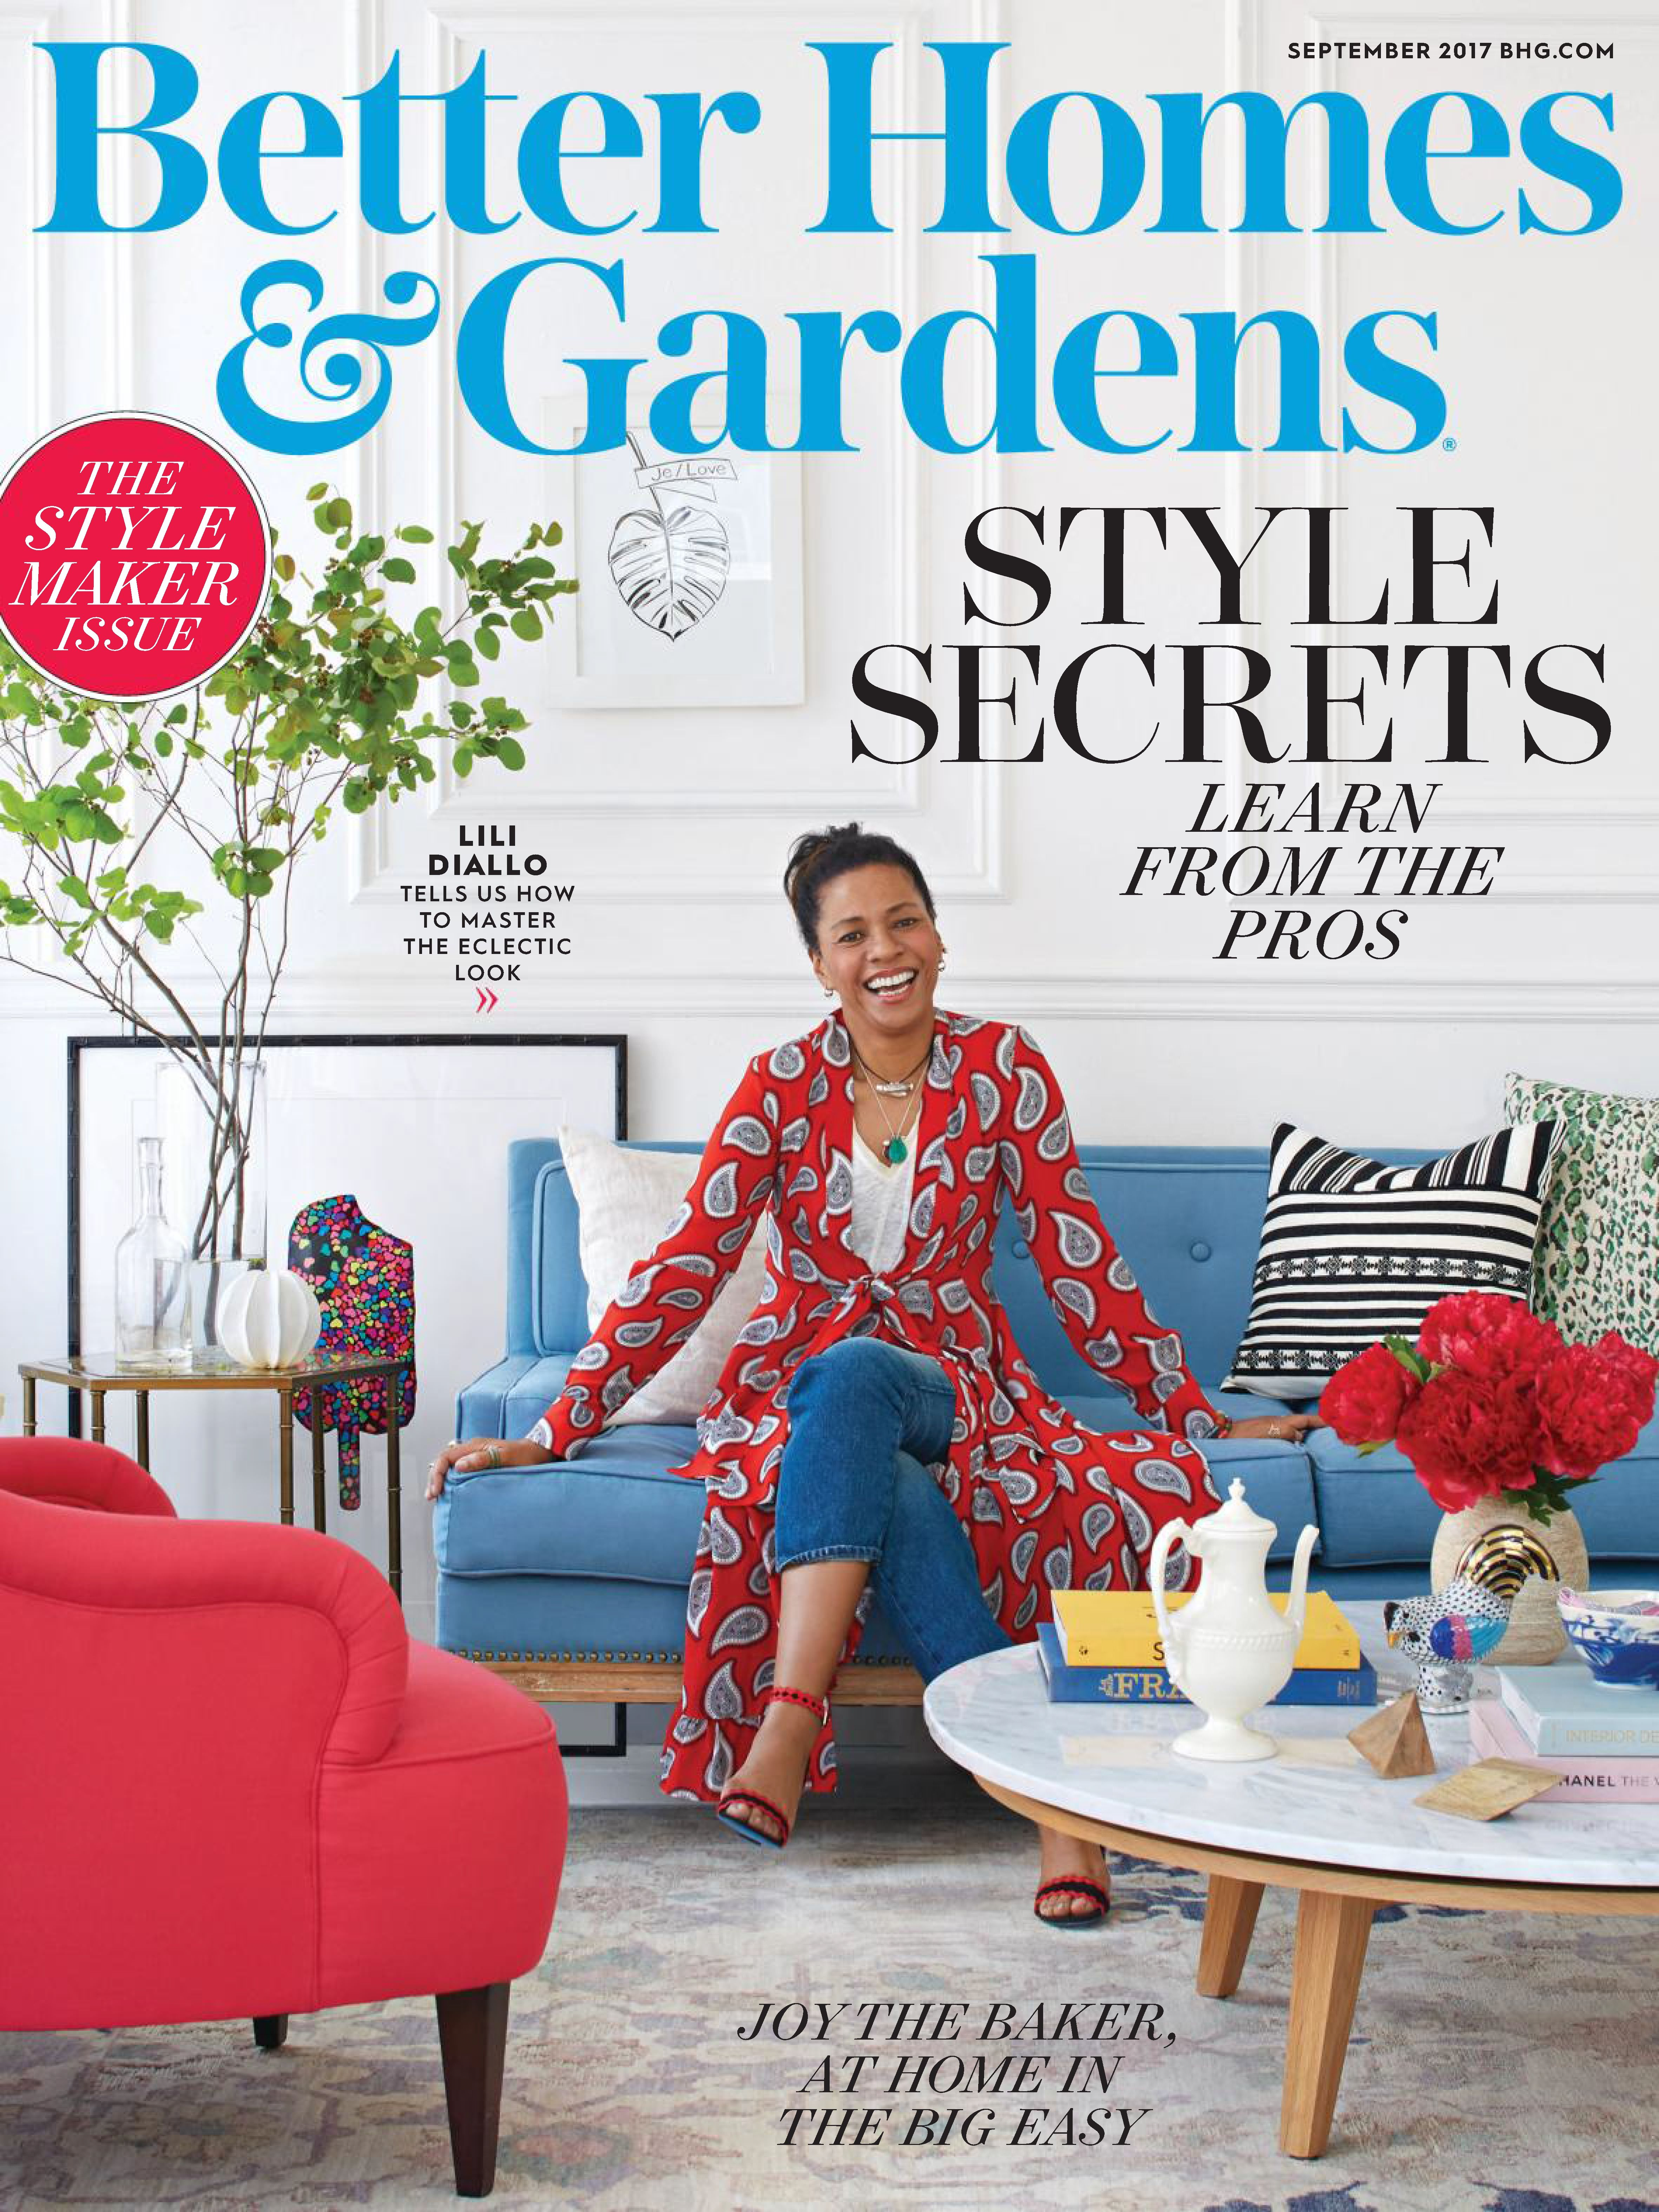 High Quality June 2017 Back Issue Of Better Homes And Gardens   Zinio.com Nice Ideas